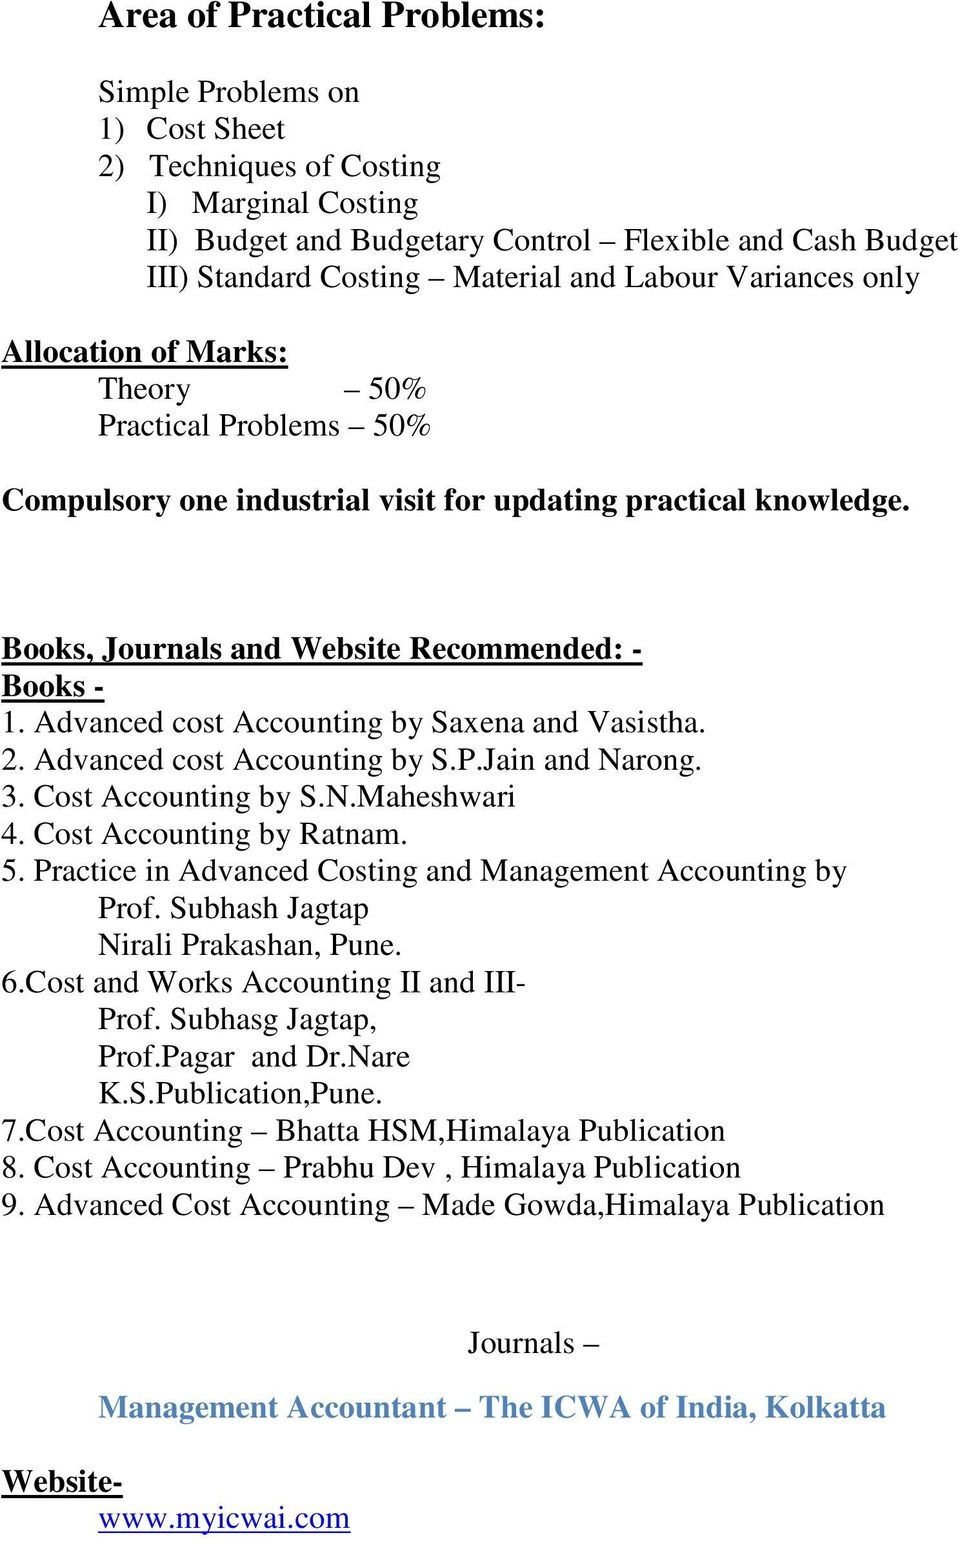 Advanced cost Accounting by Saxena and Vasistha. 2. Advanced cost Accounting by S.P.Jain and Narong. 3. Cost Accounting by S.N.Maheshwari 4. Cost Accounting by Ratnam. 5.